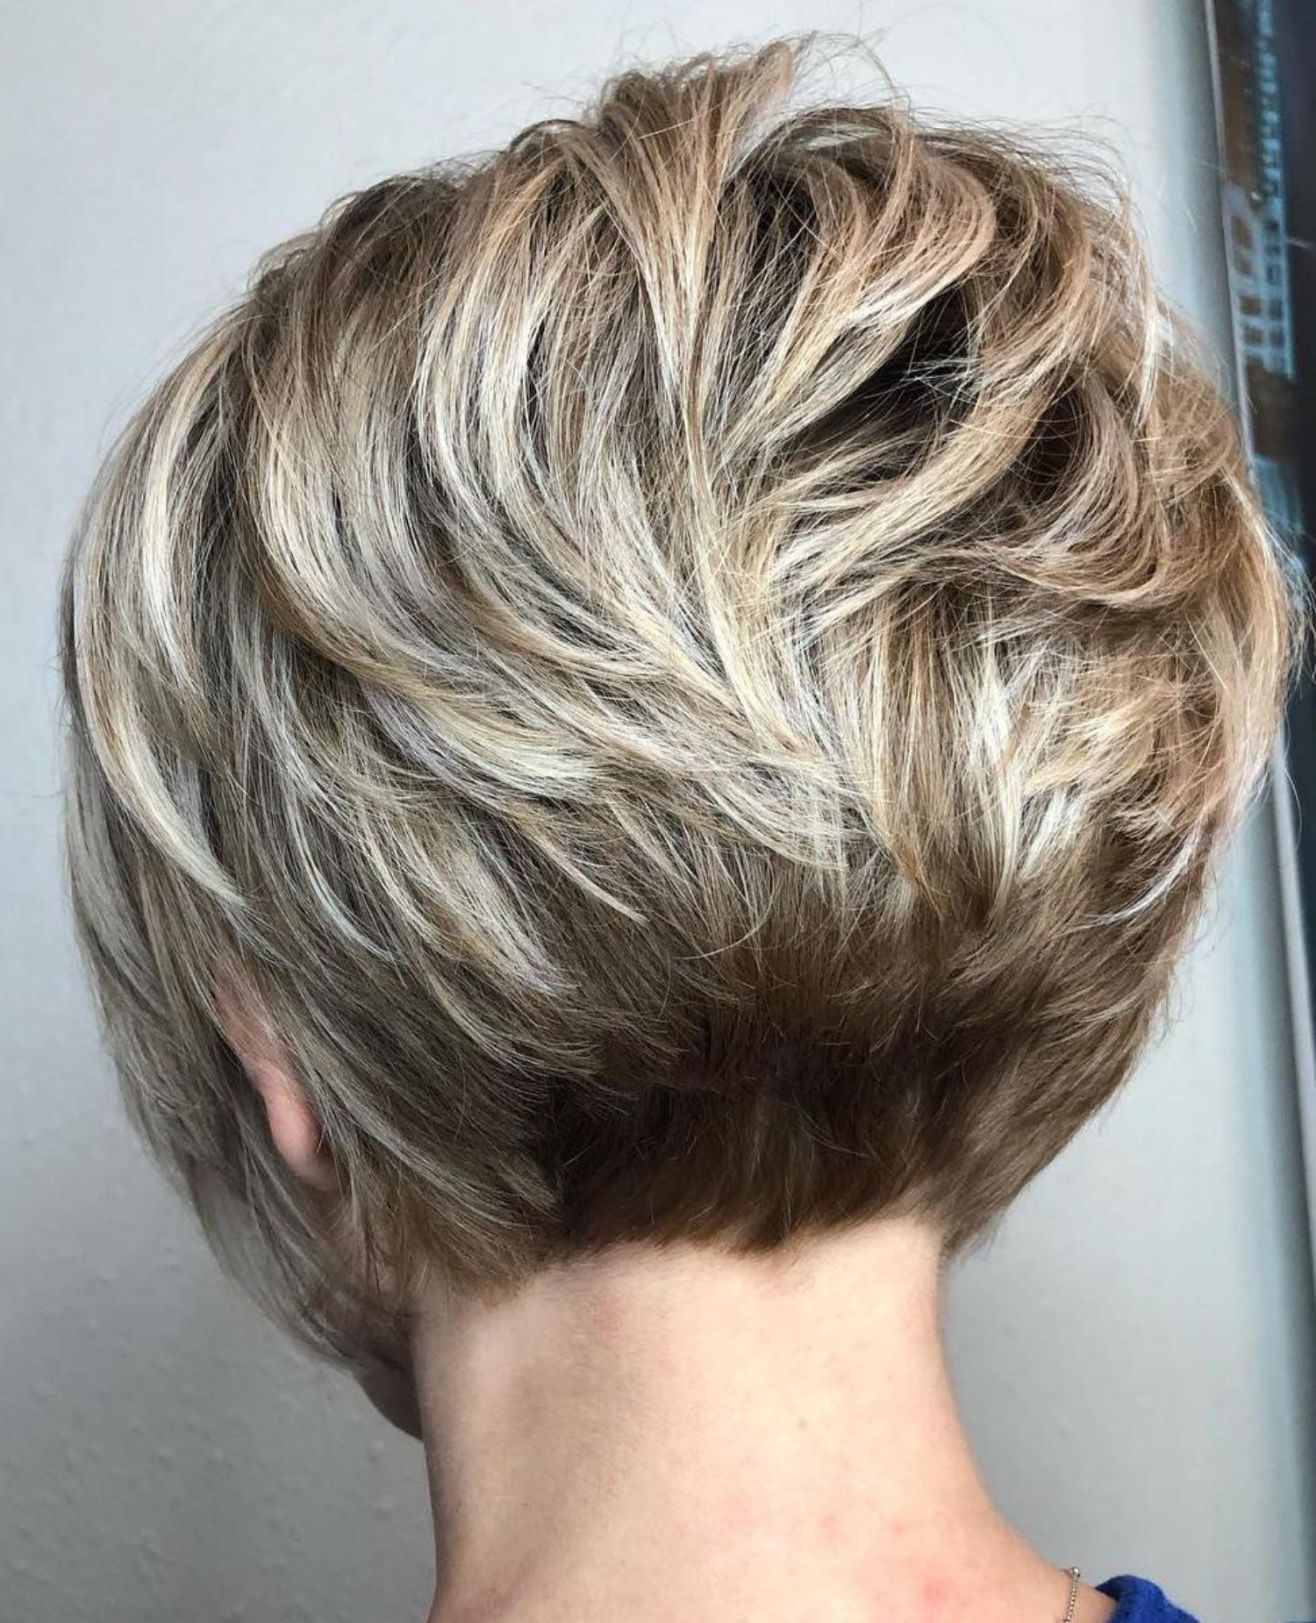 Very Short Wavy Stacked Bob With Bronde Balayage In 2020 Stacked Haircuts Short Hairstyles For Thick Hair Short Hair With Layers